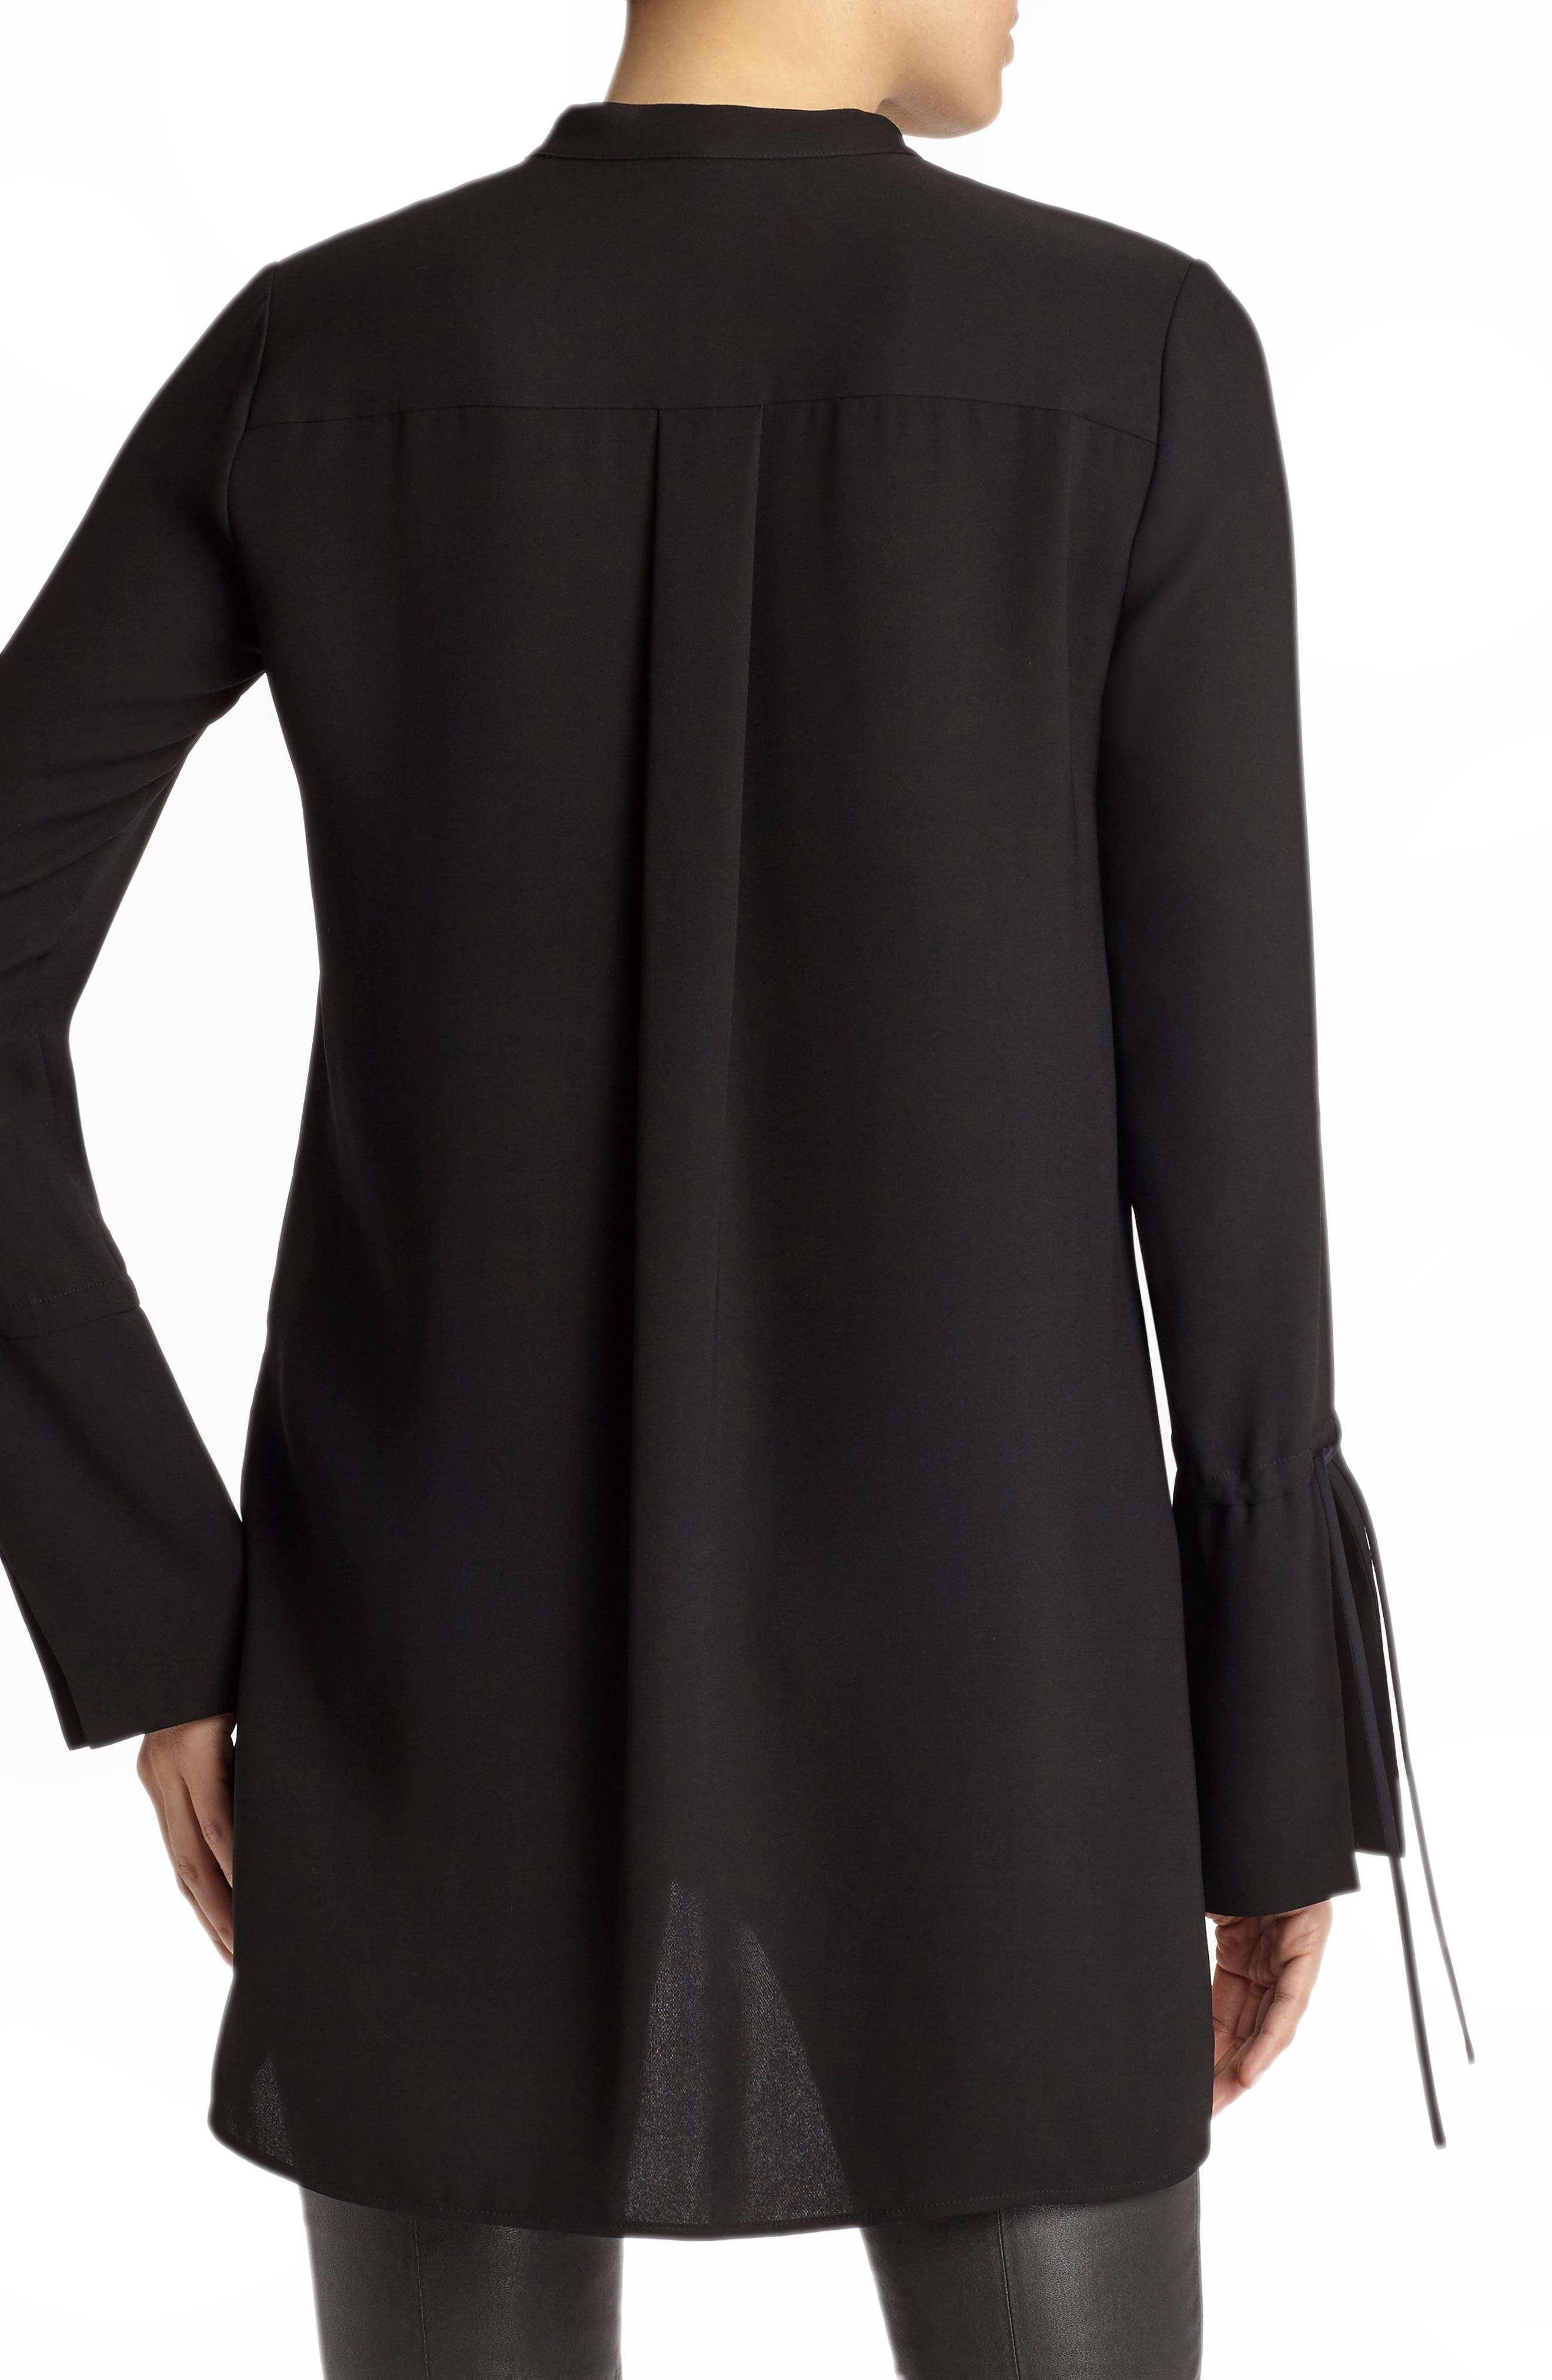 Desra Silk Blouse,                             Alternate thumbnail 2, color,                             Black